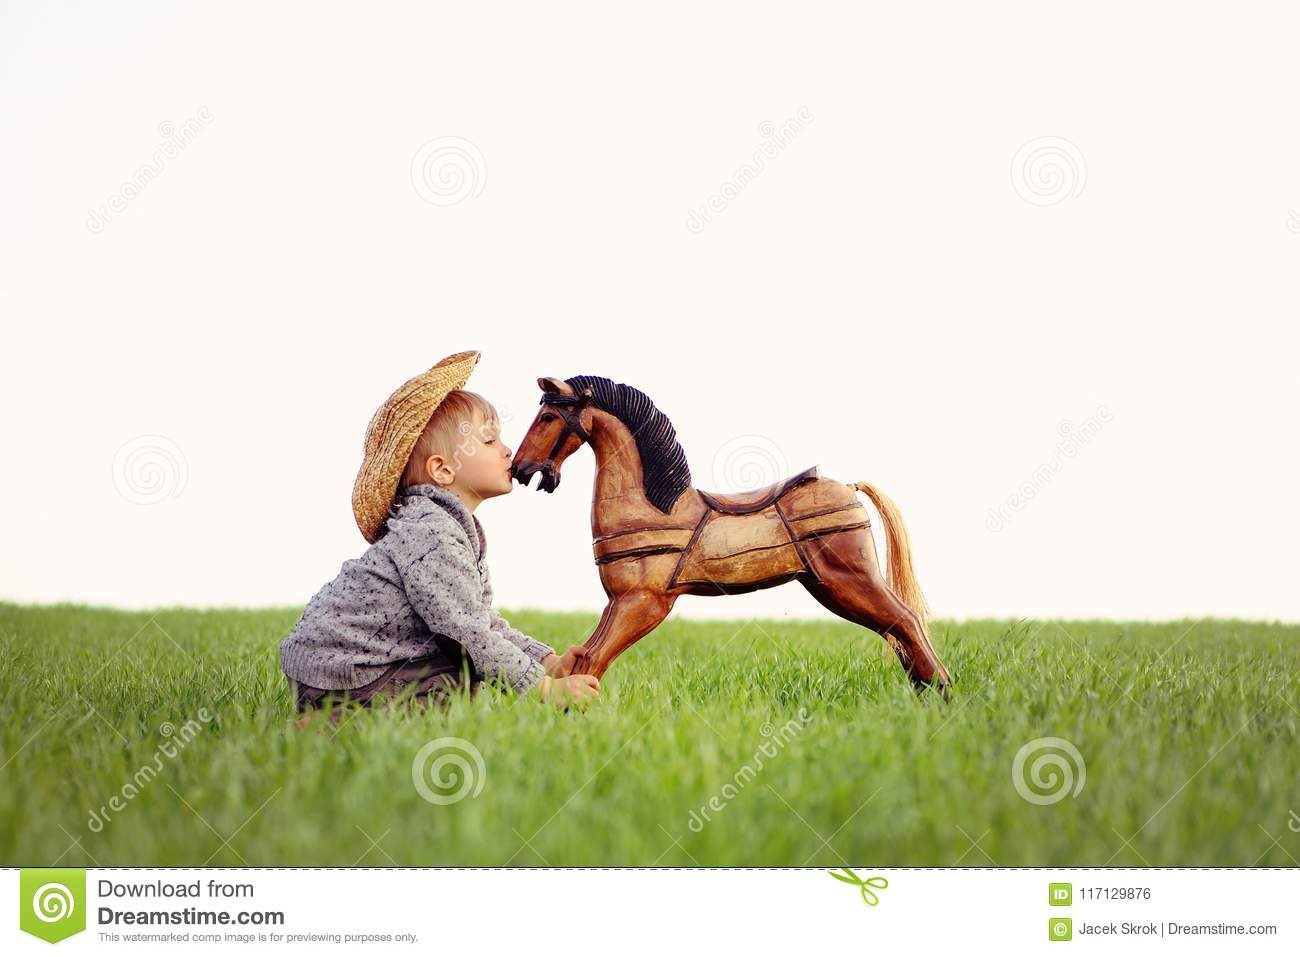 A small child, a boy is kissing a rocking horse on a meadow. Happy childhood in the countryside, the child looks after his pet